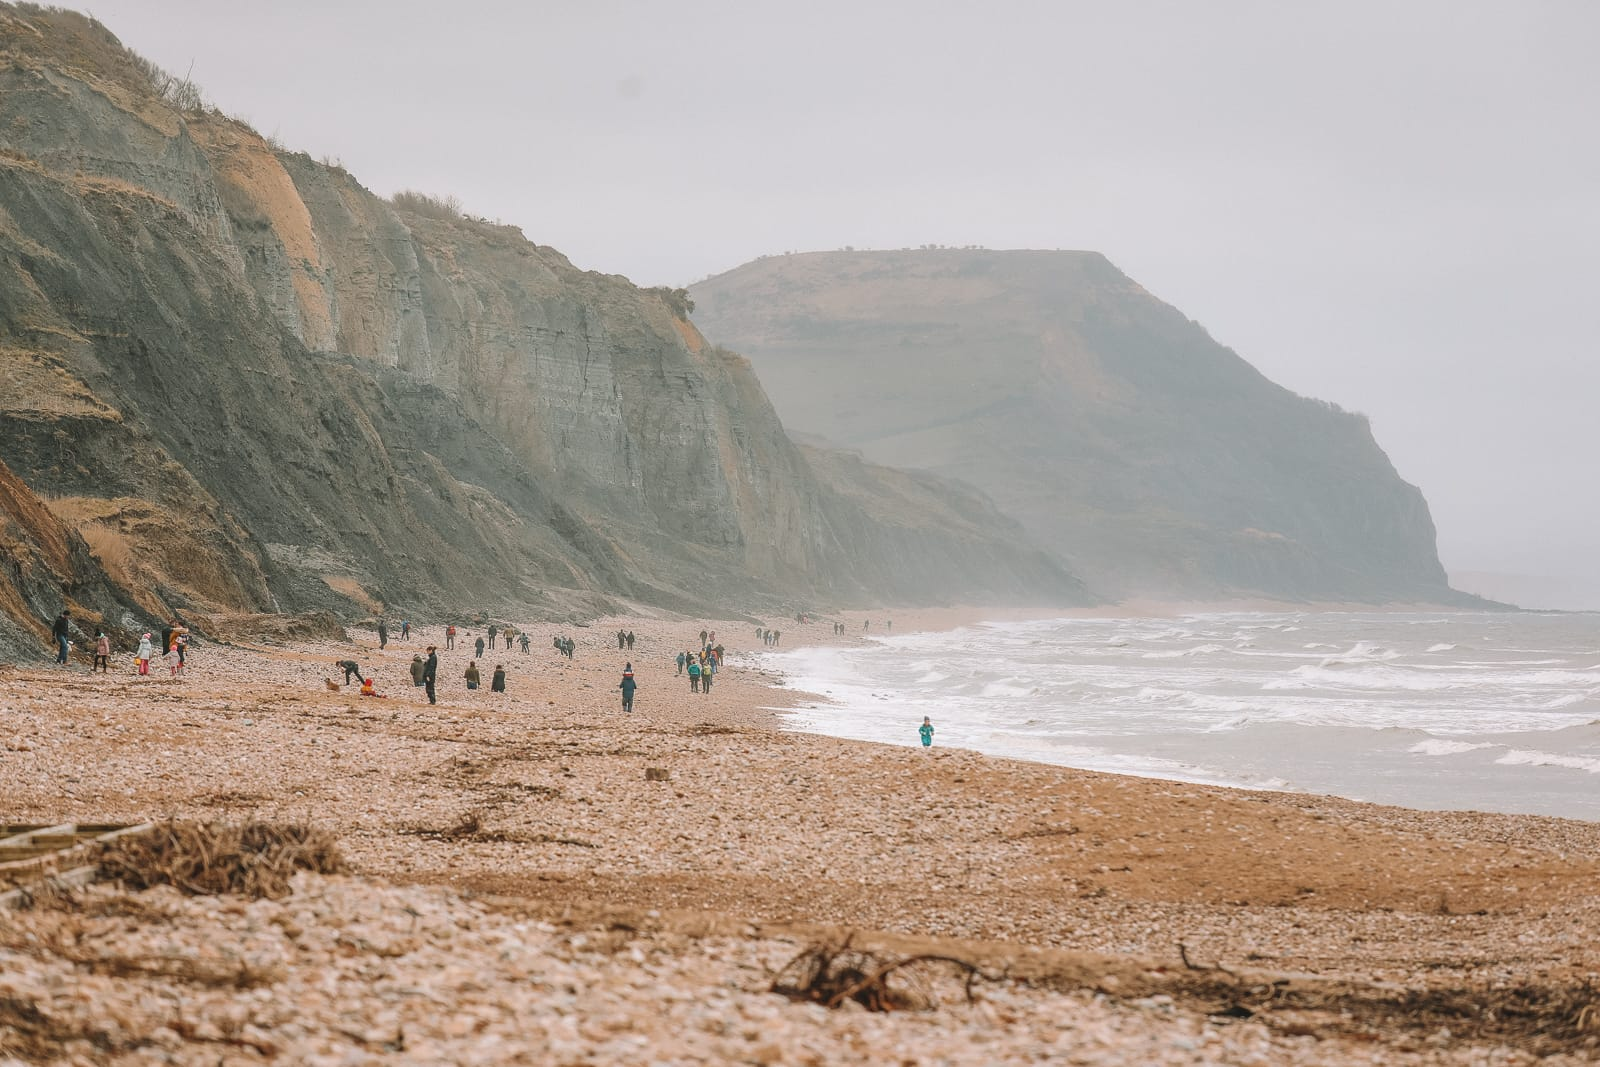 Searching For Dinosaurs And Fossils On The Jurassic Coast Of England (7)